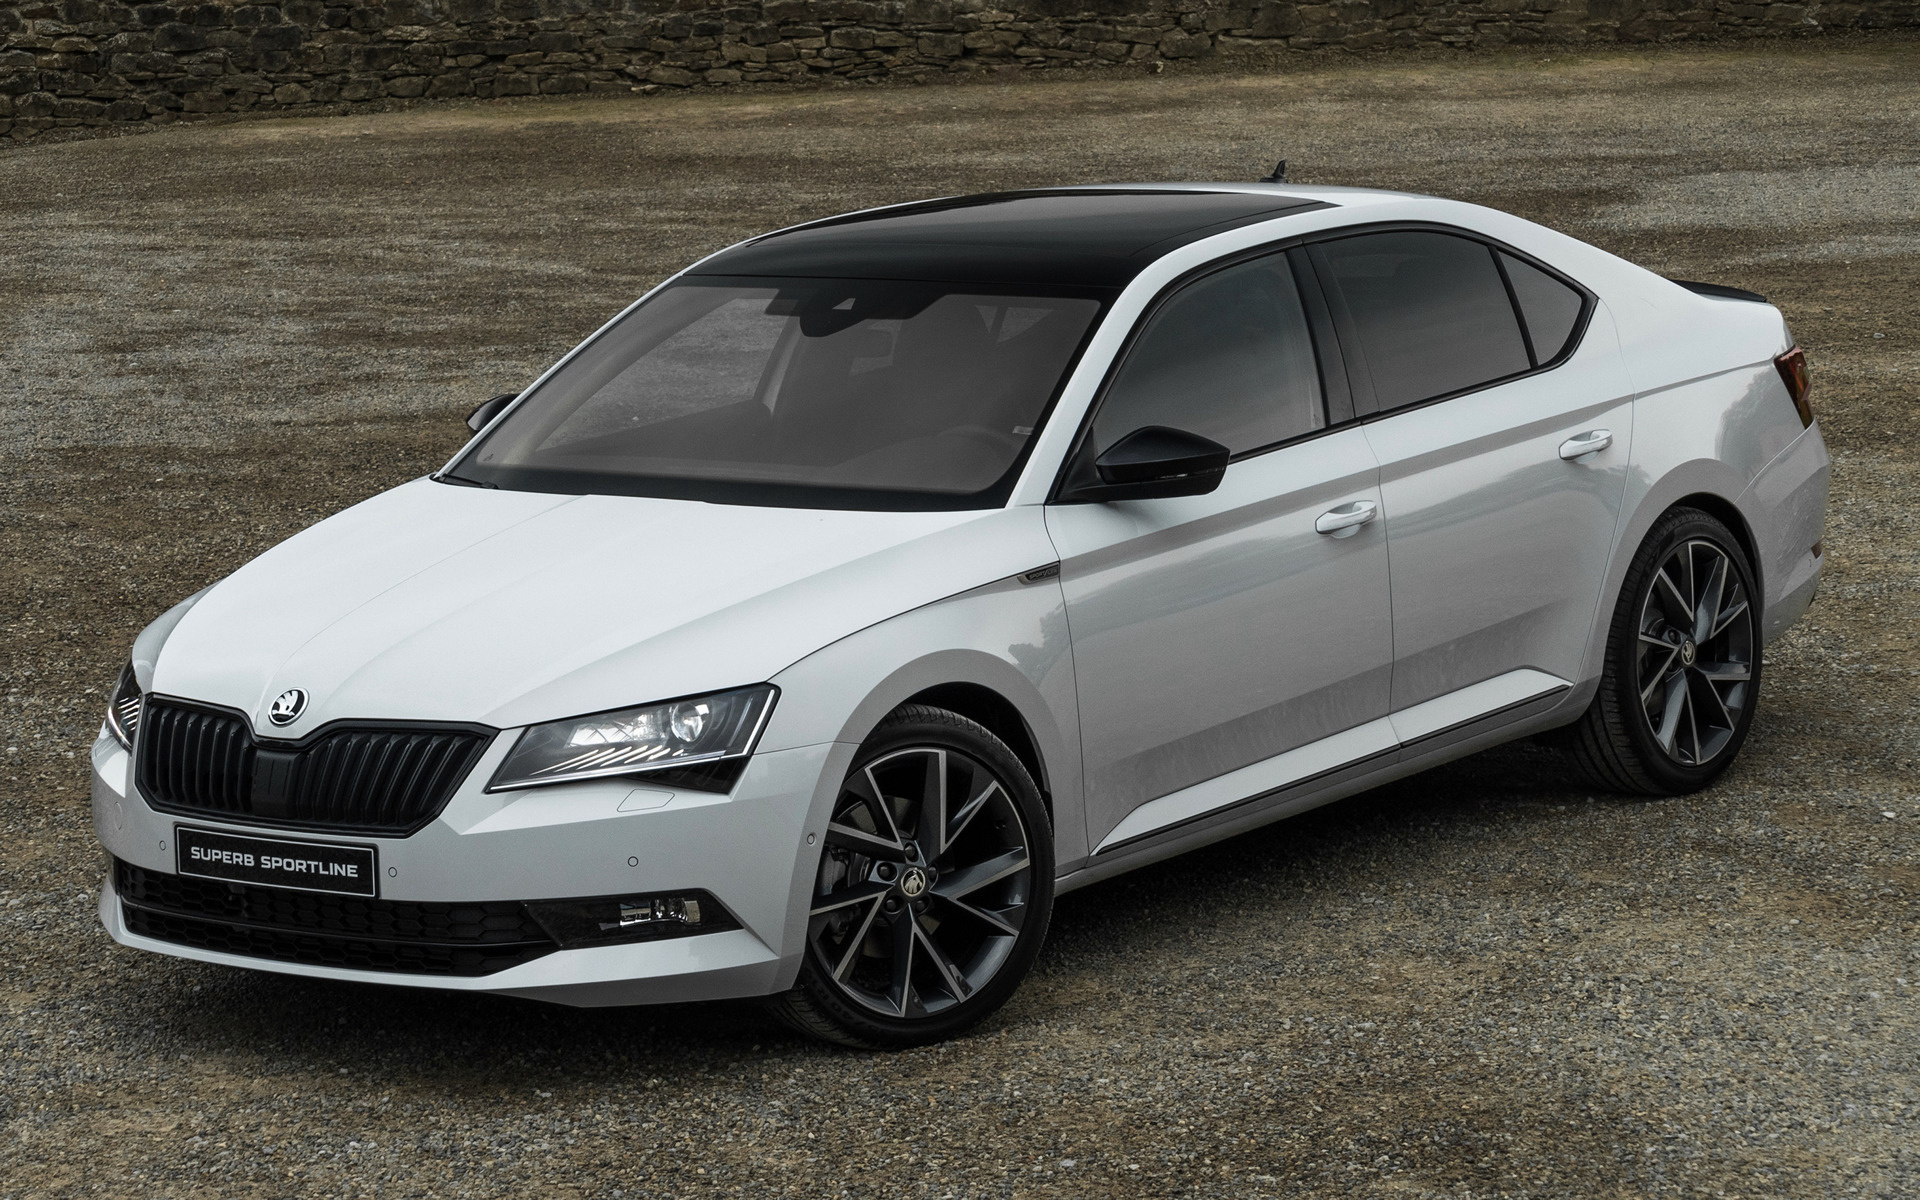 Skoda Superb SportLine (2015) Wallpapers and HD Images - Car Pixel